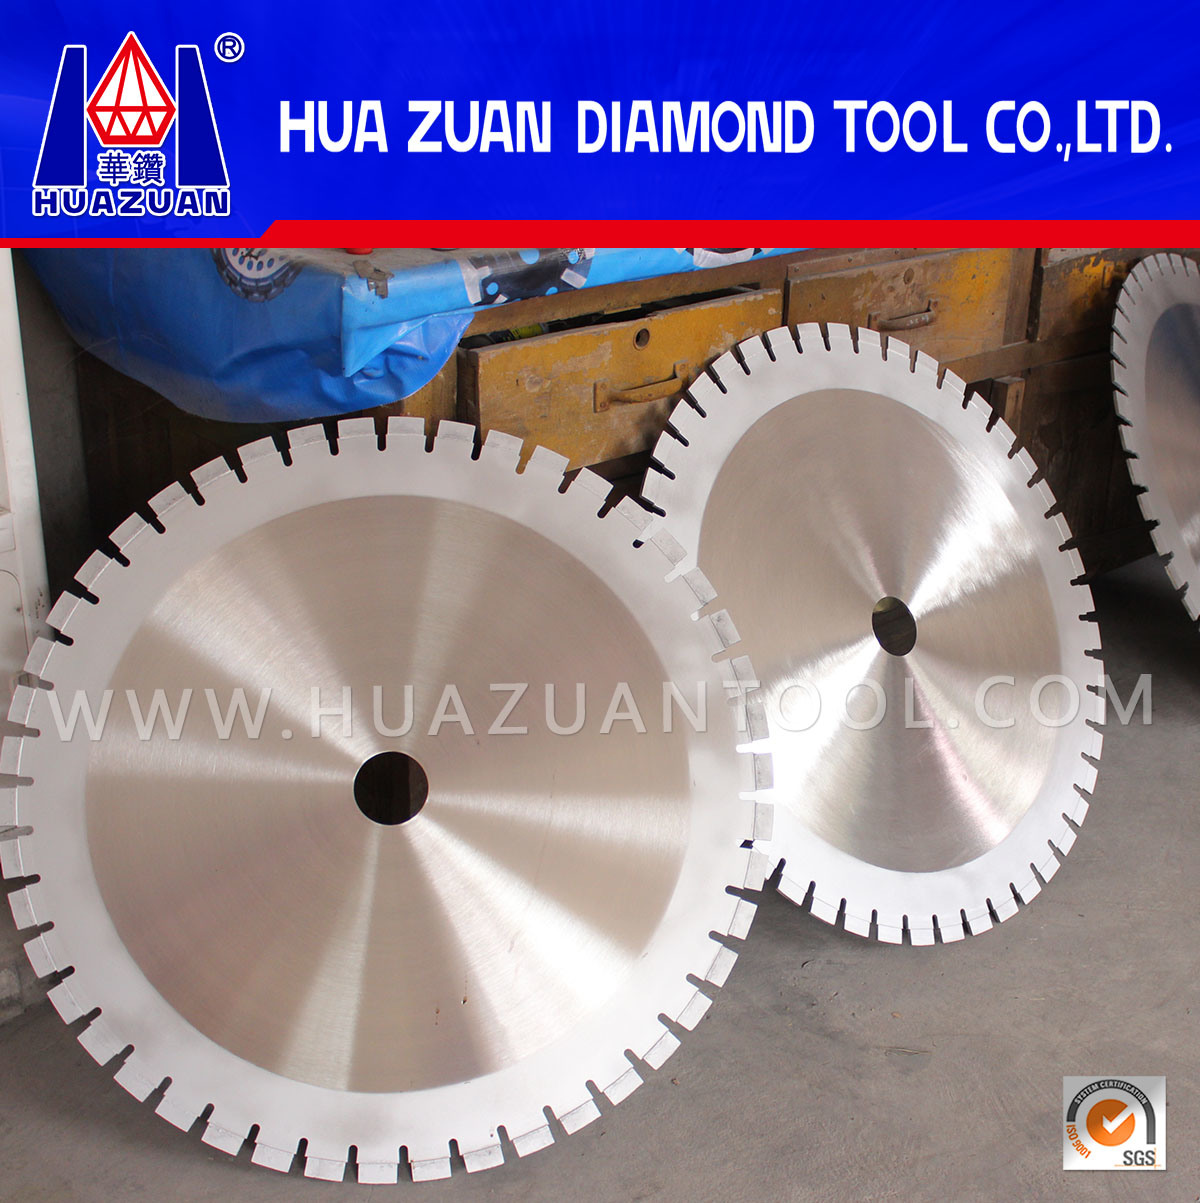 800mm Diamond Blade Machine Saw Blade for Cutting Granite Block